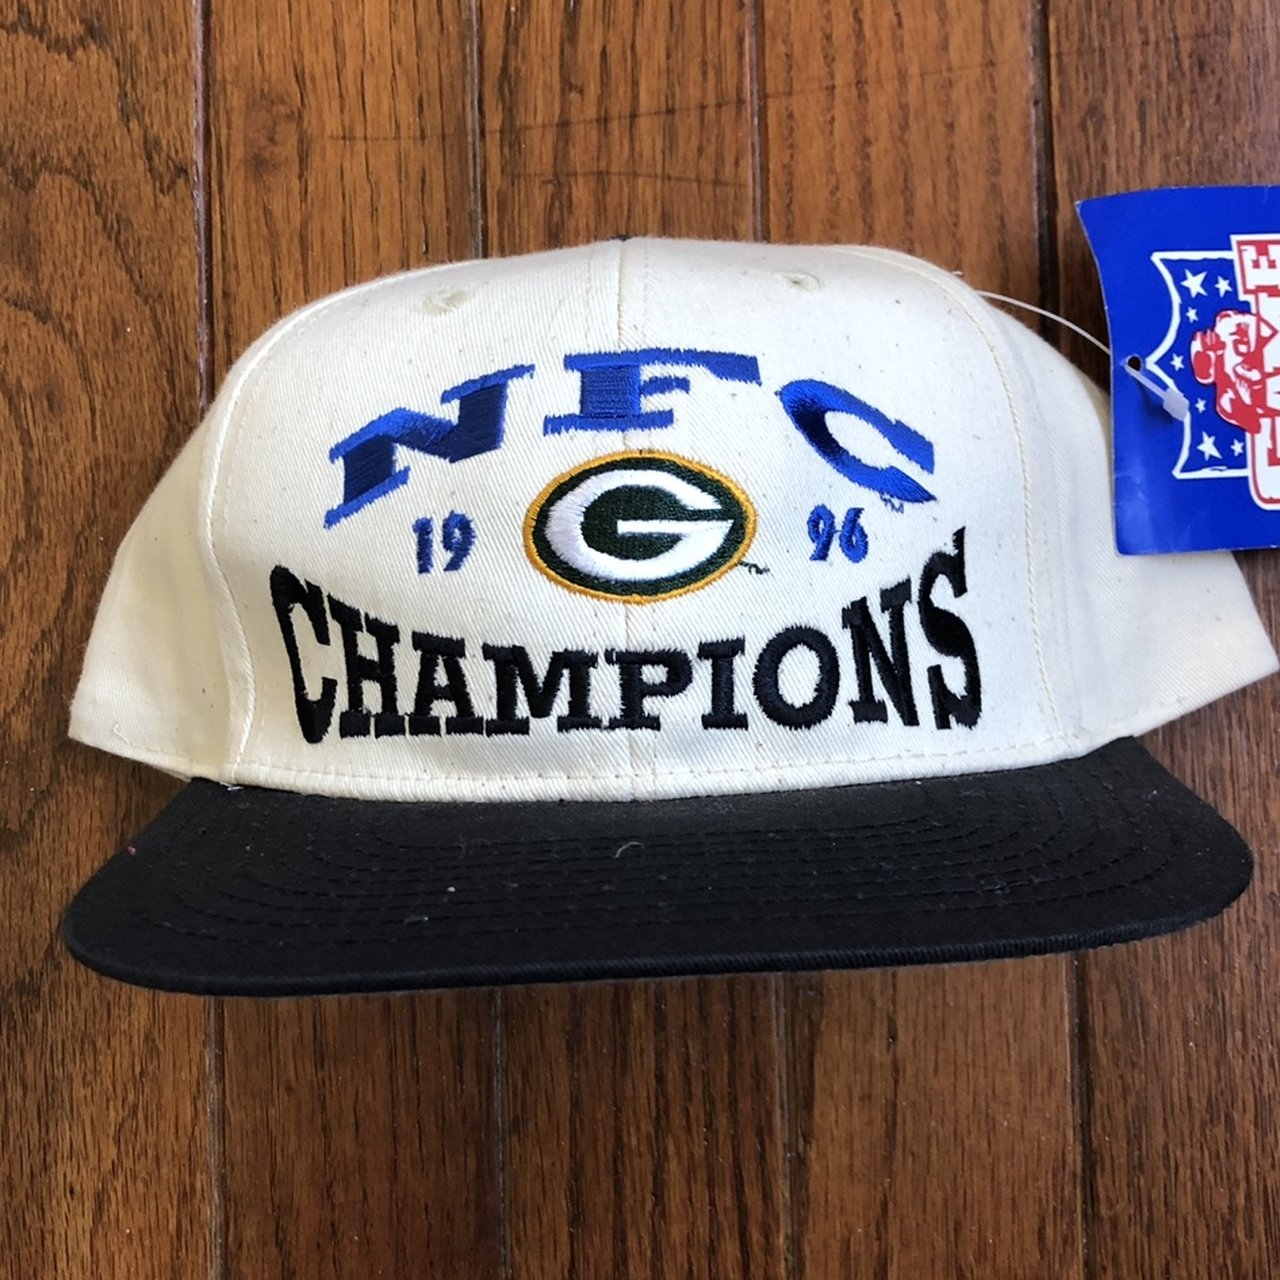 0ee374e6 @kapkingdom. 10 days ago. Douglassville, United States. Vintage 90s Deadstock  Green Bay Packers Champions NFL Snapback Hat Baseball Cap